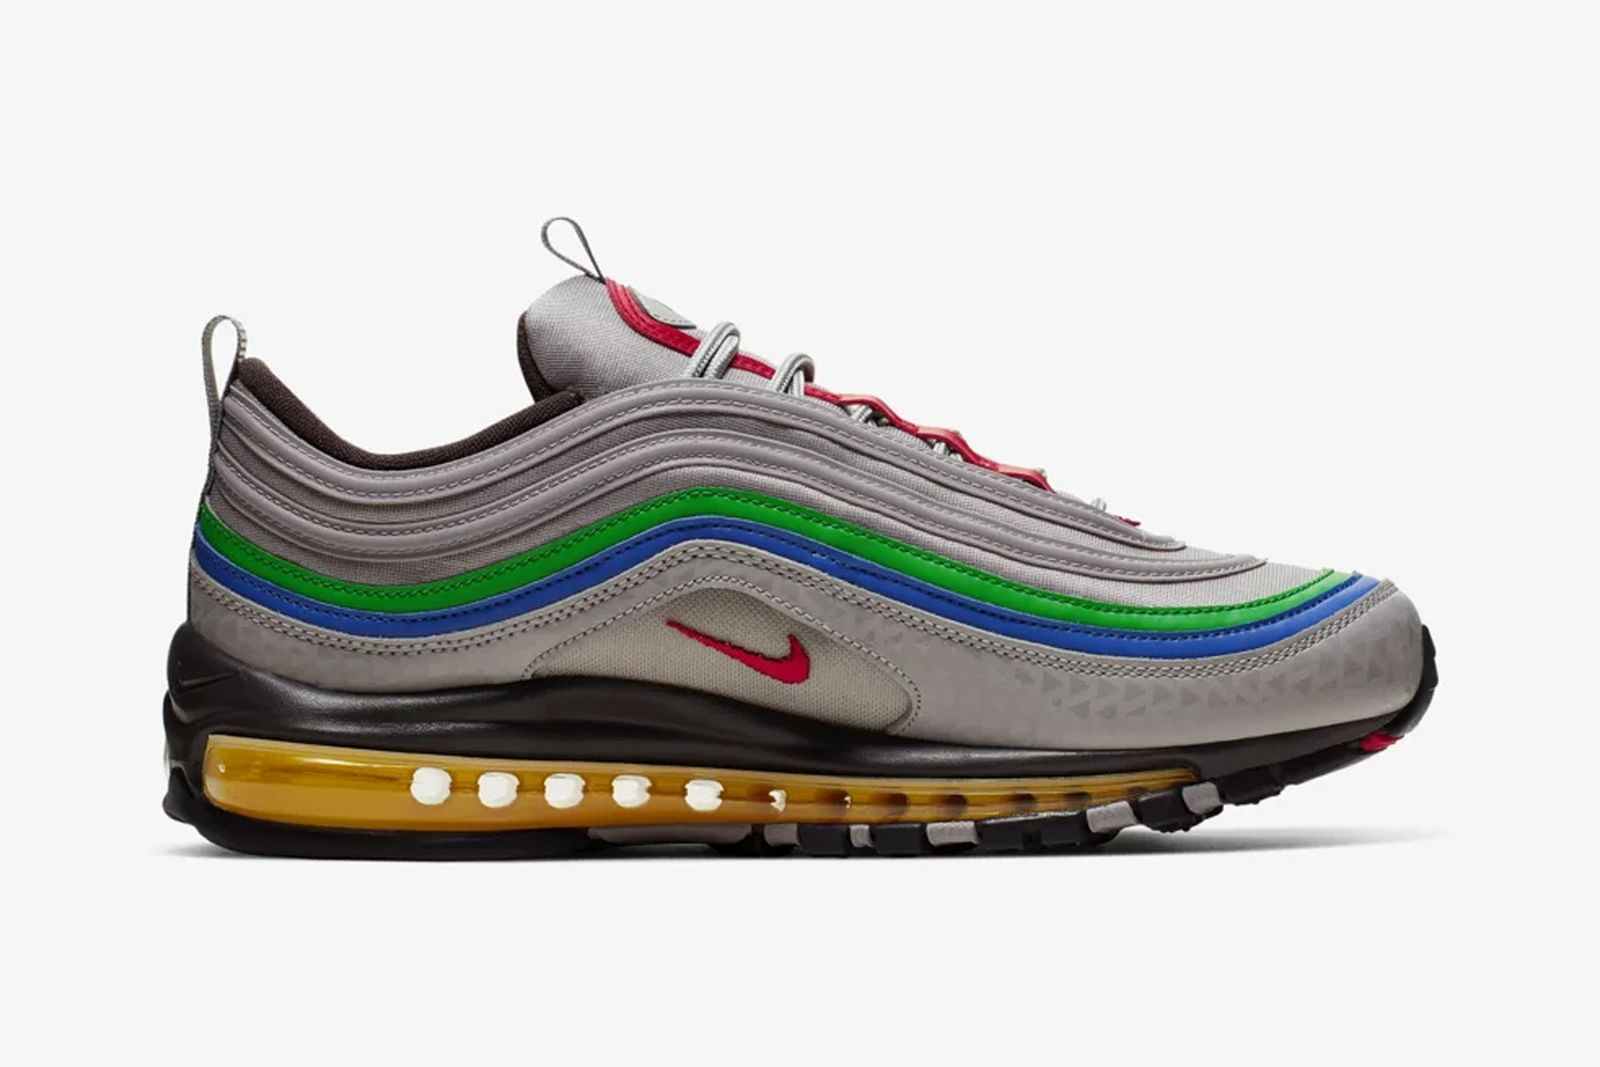 nike air max 97 nintendo 64 release date price official